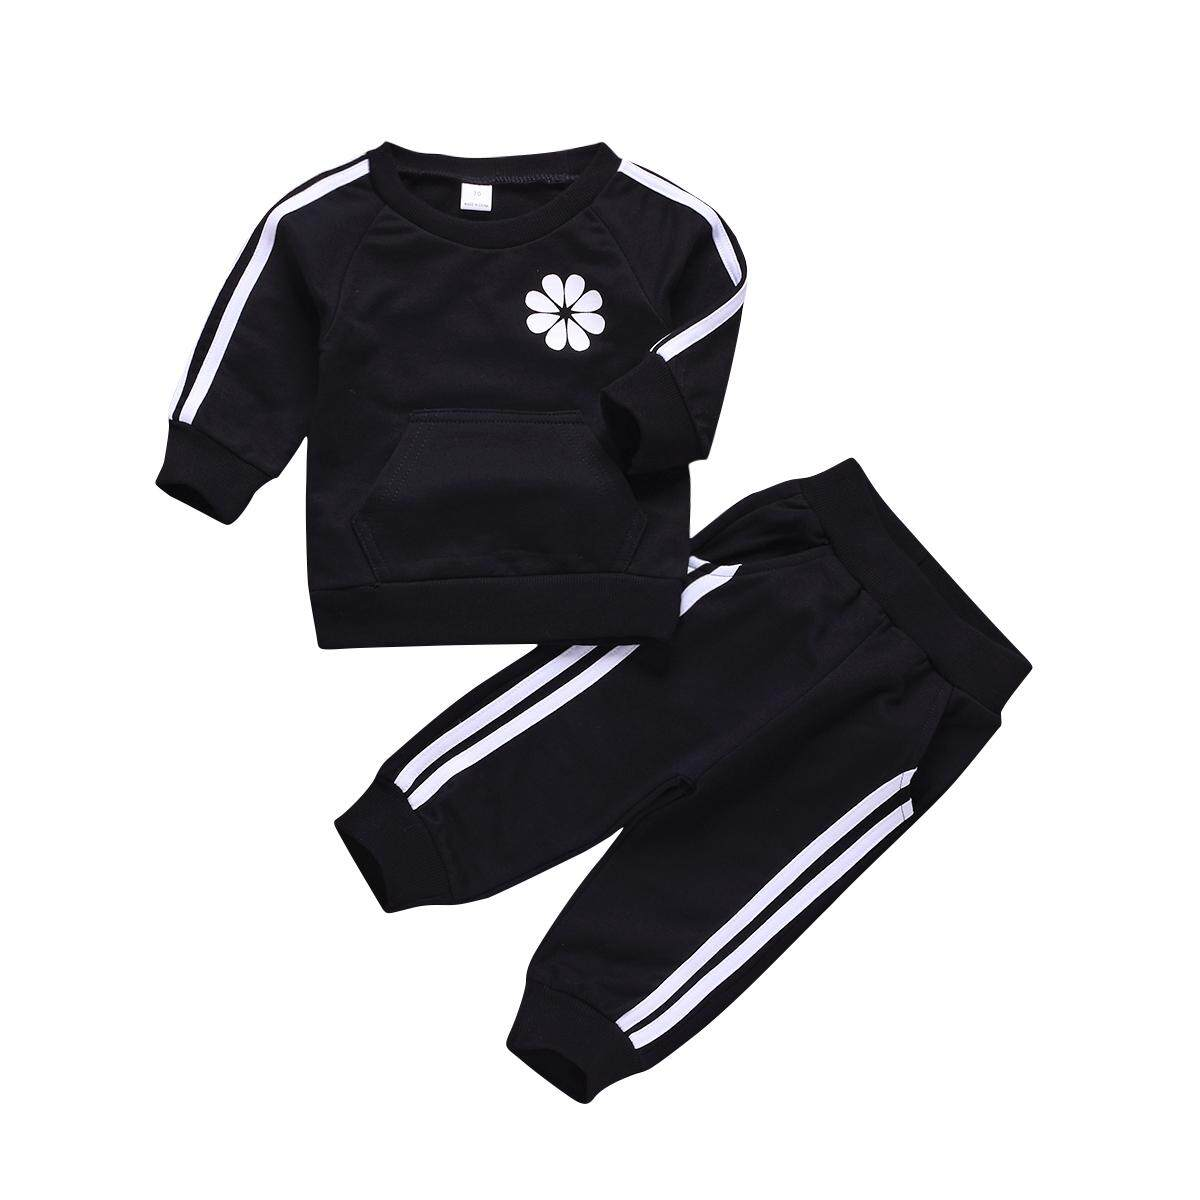 b9ad4316dd609 0-24 Months Kids Boys Casual Sport Suit Outdoor Infant Baby Cotton  Tracksuits 2colors